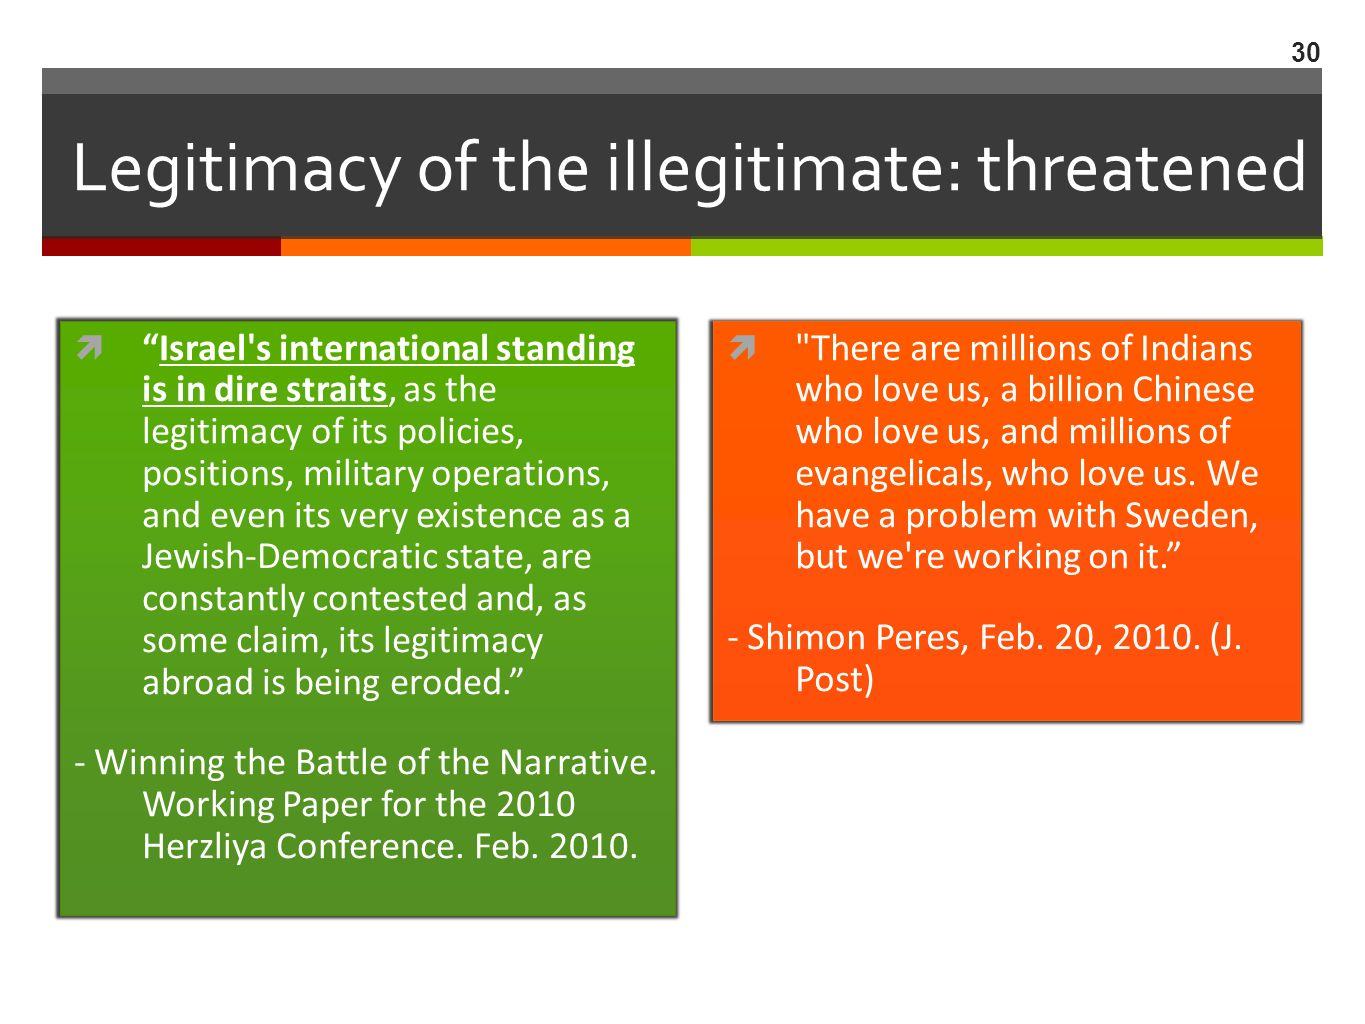 Legitimacy of the illegitimate: threatened Israel s international standing is in dire straits, as the legitimacy of its policies, positions, military operations, and even its very existence as a Jewish-Democratic state, are constantly contested and, as some claim, its legitimacy abroad is being eroded.